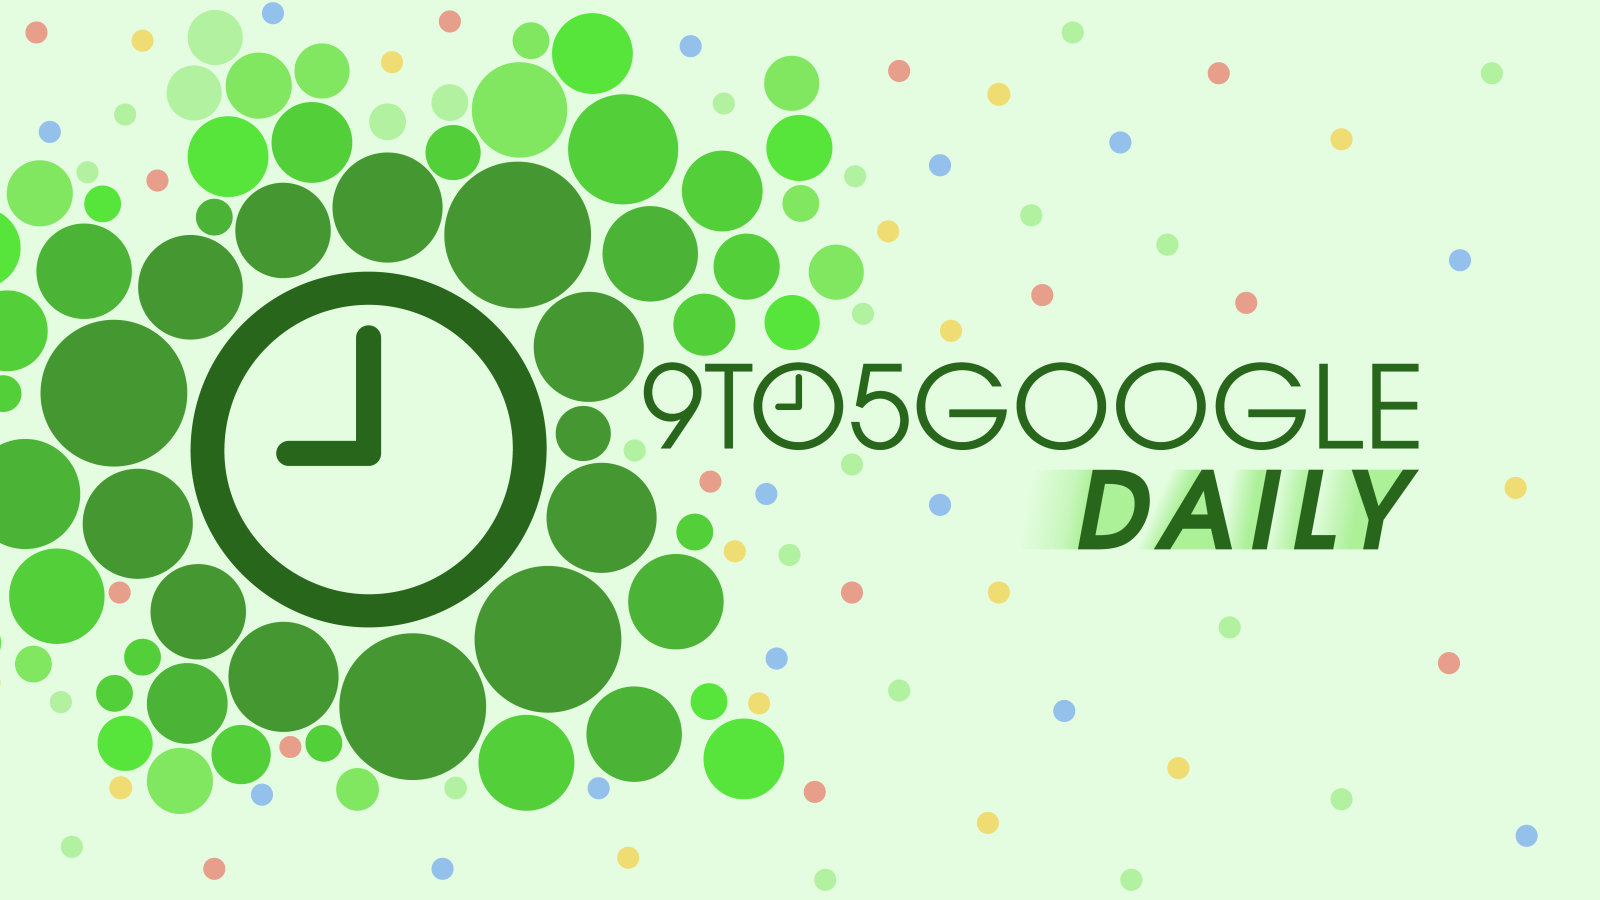 9to5Google Daily 212: Yes, Google+ is actually shutting down on April 2nd